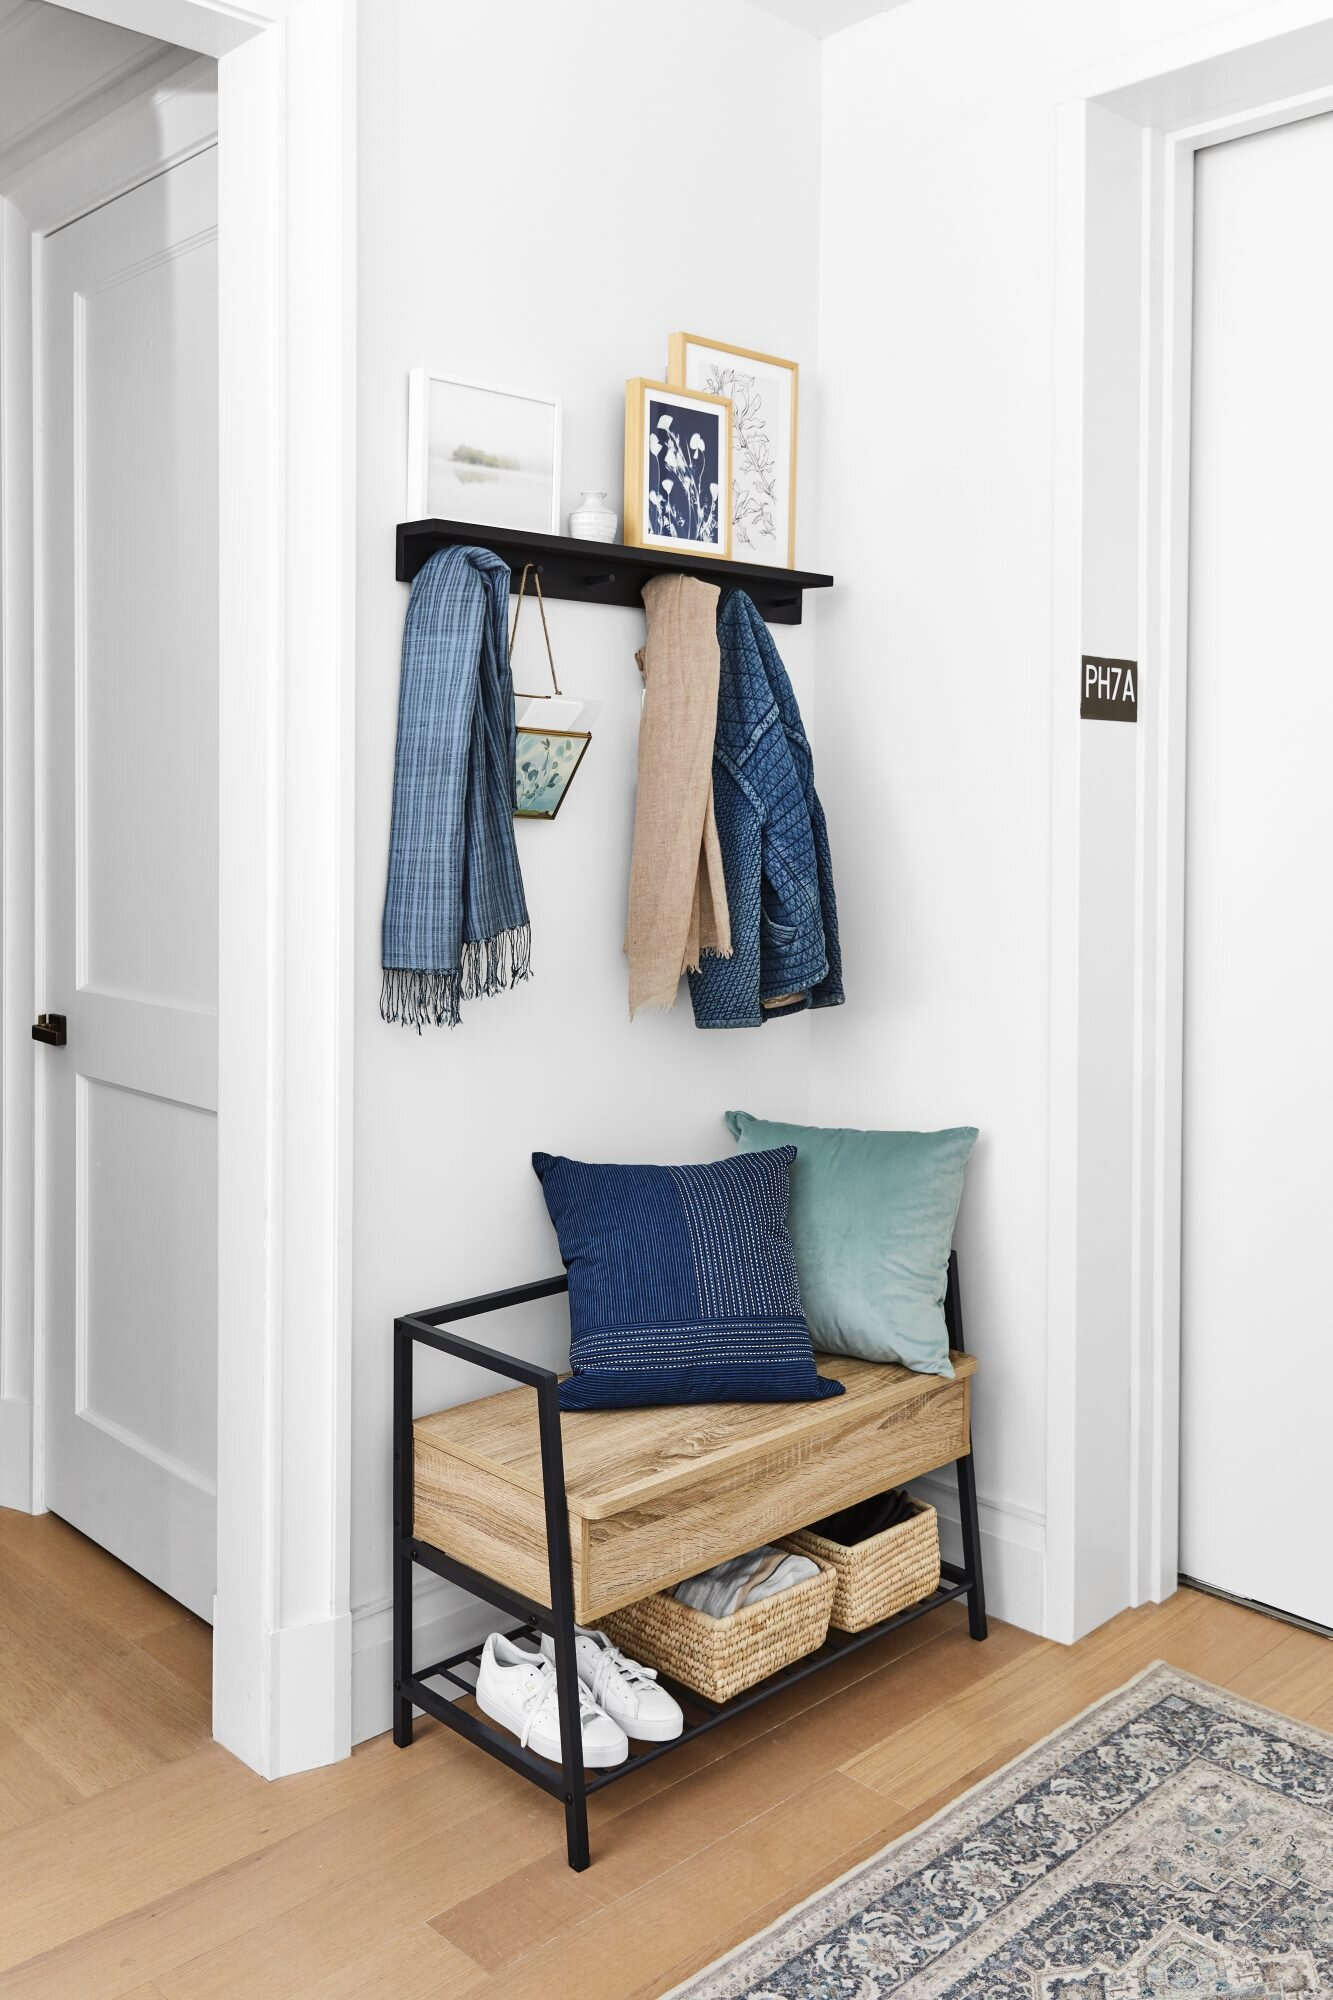 Entryway with bench and peg rail